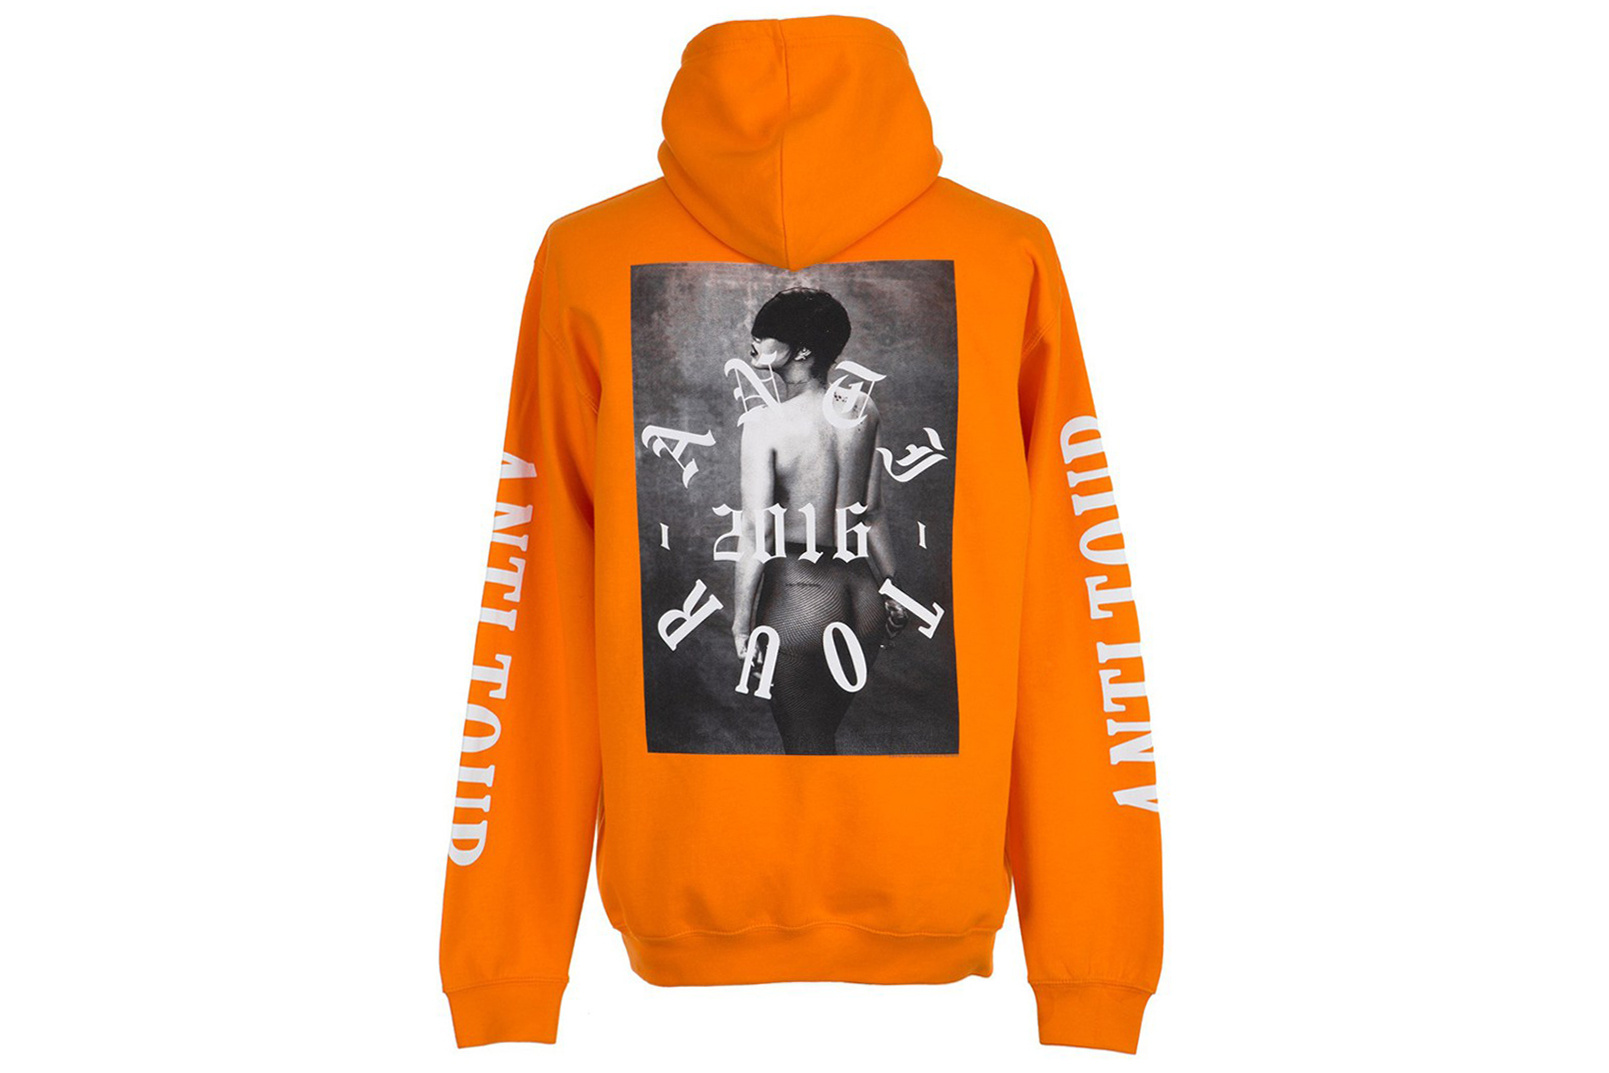 rihanna-embraces-rebel-spirit-anti-merch-001